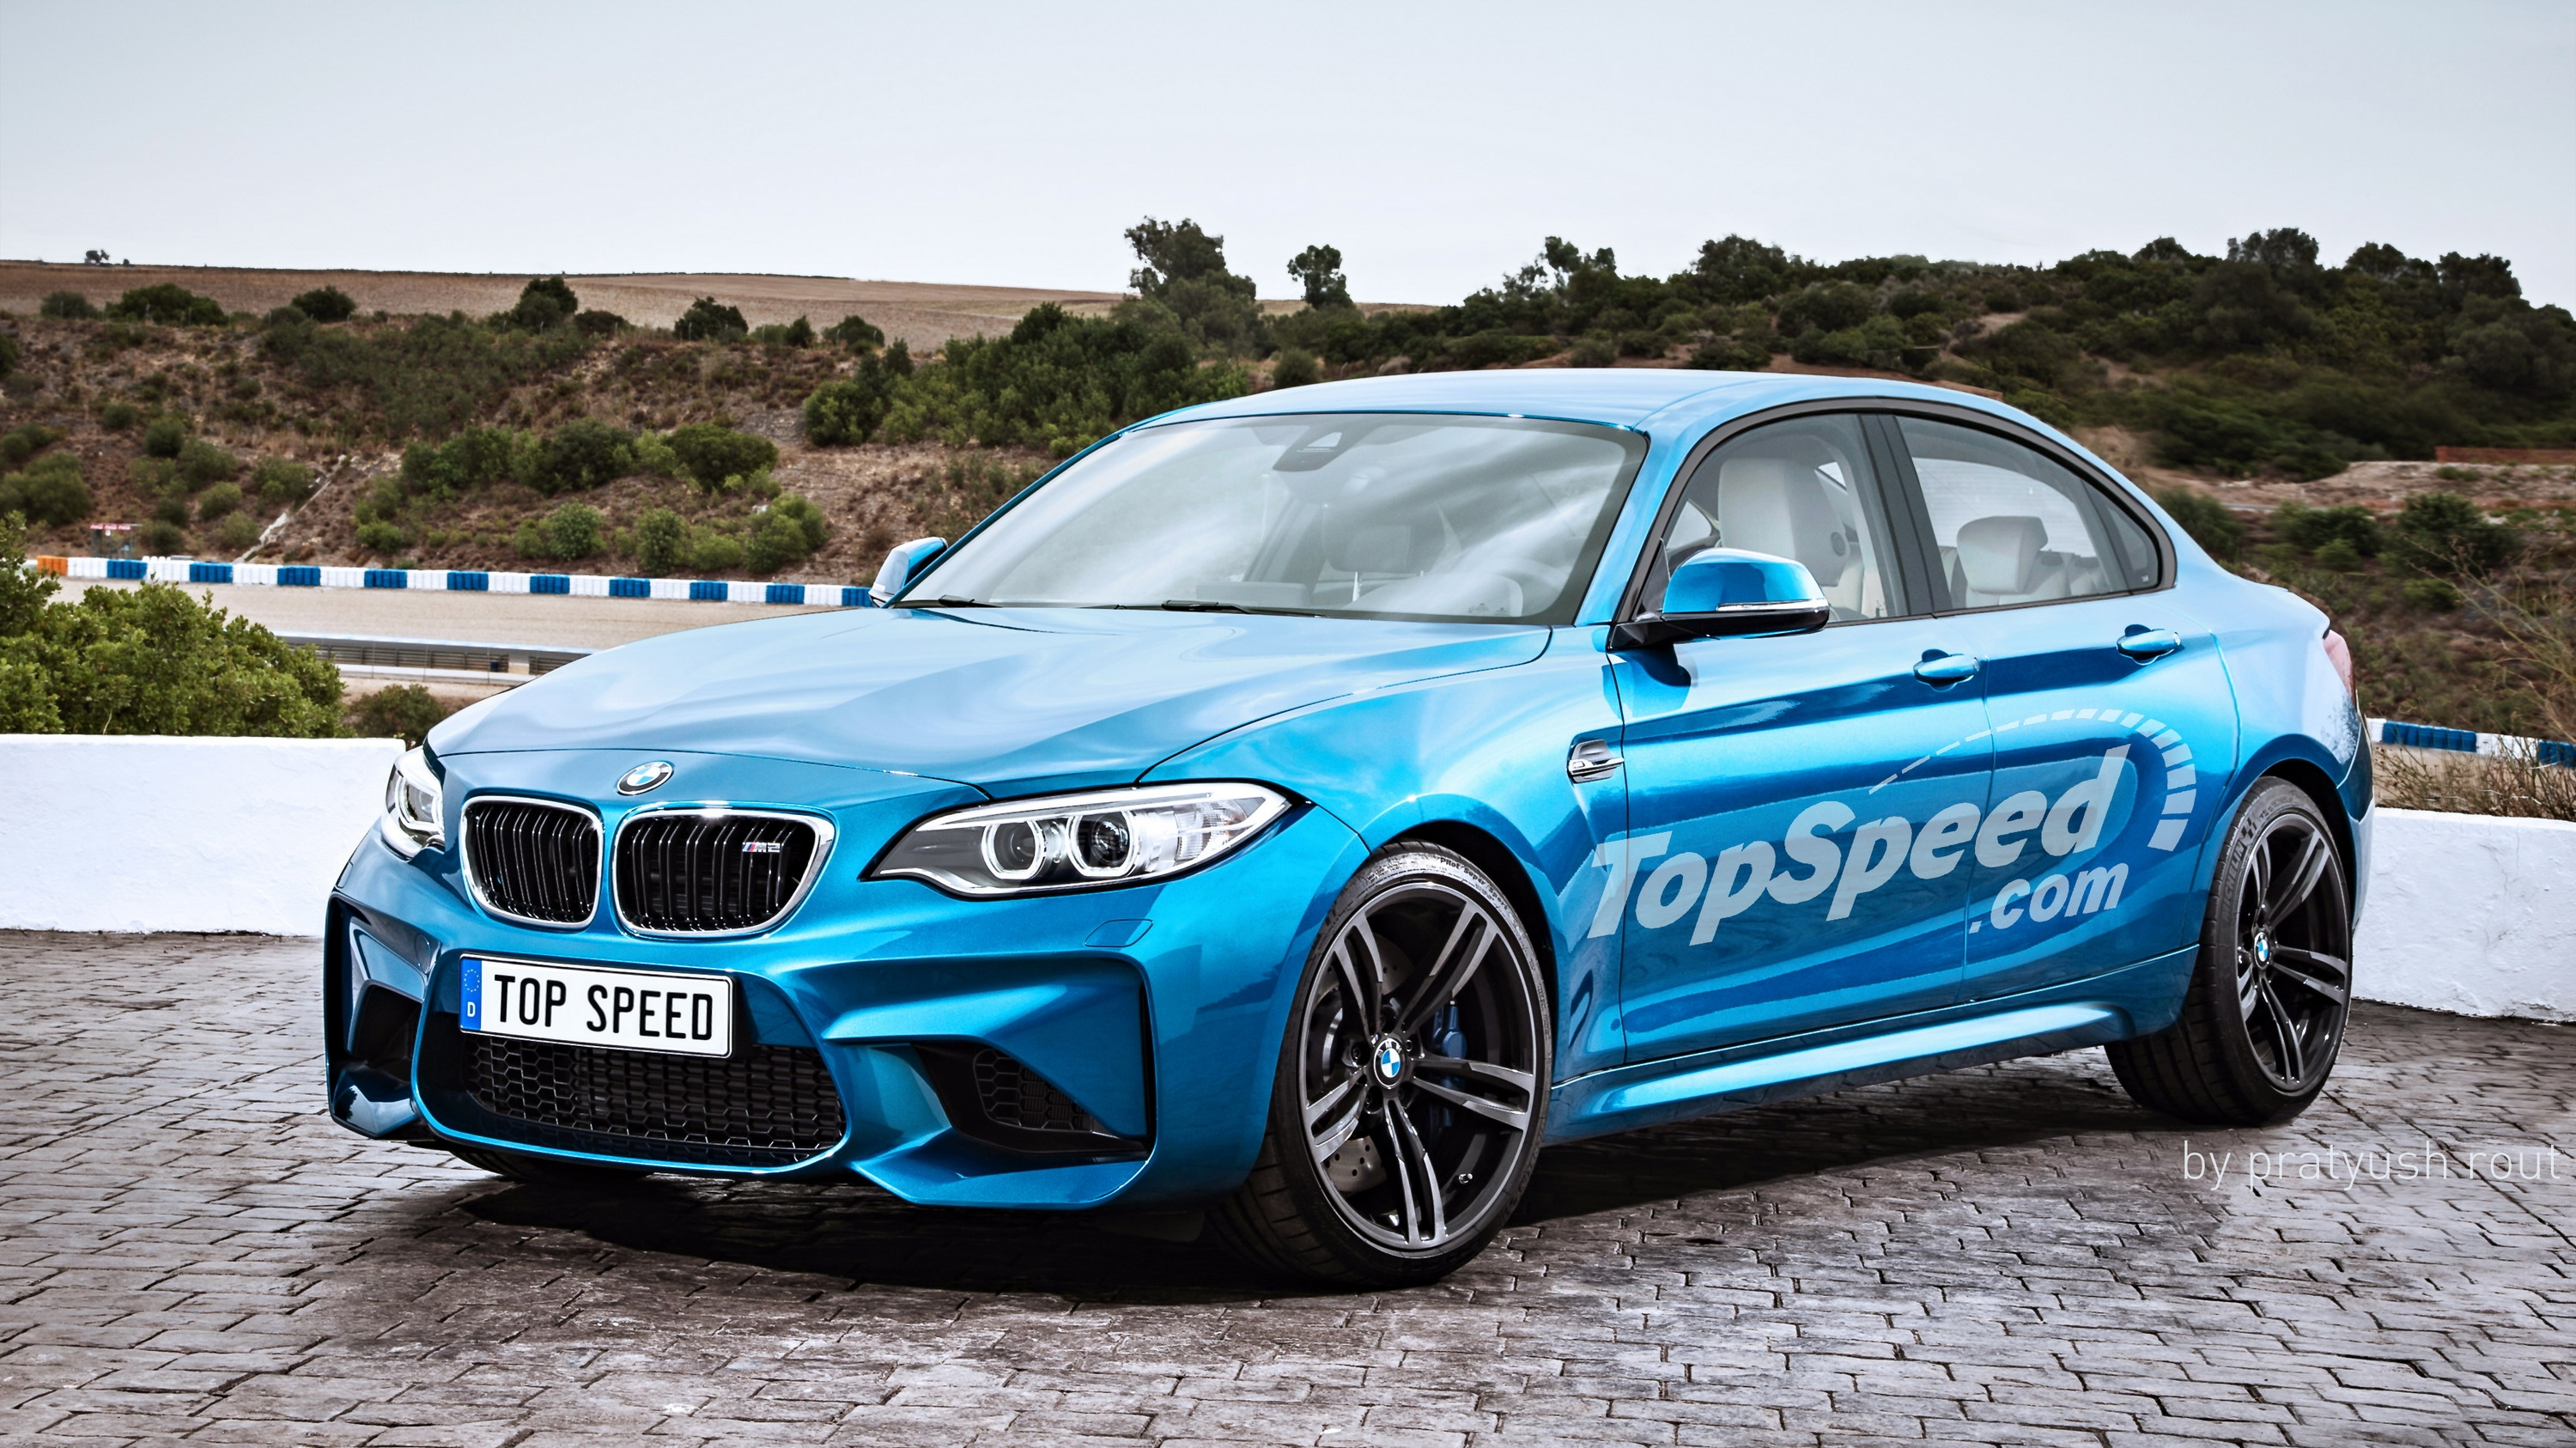 The BMW 2 Series Was Introduced In 2014 And Itu0027s The First Model To Use The  Name Following A Split Off From The 1 Series Family.